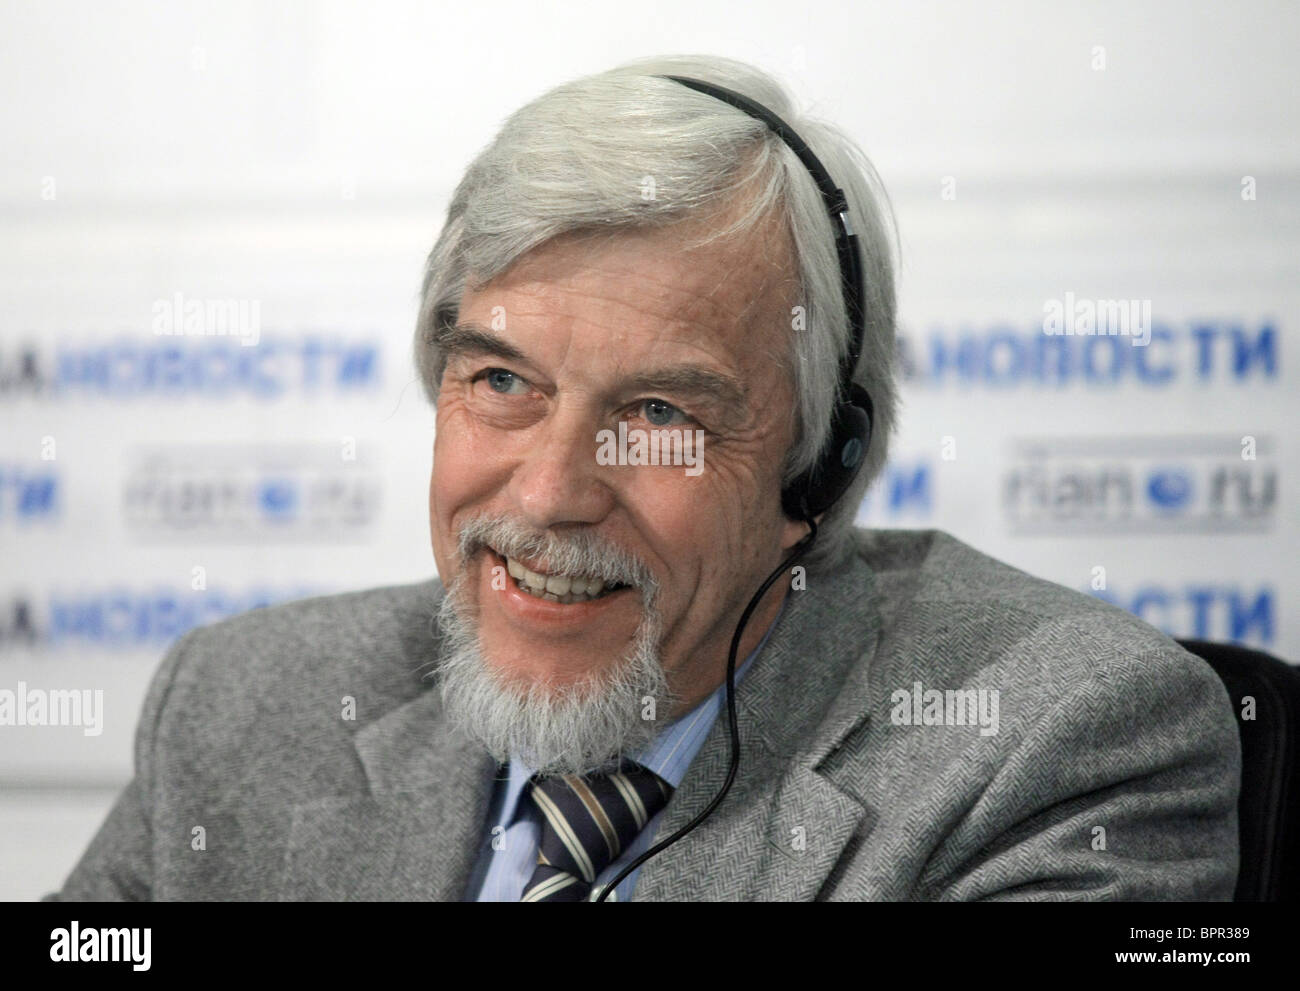 CERN Director General Rolf-Dieter Heuer holds news conference - Stock Image